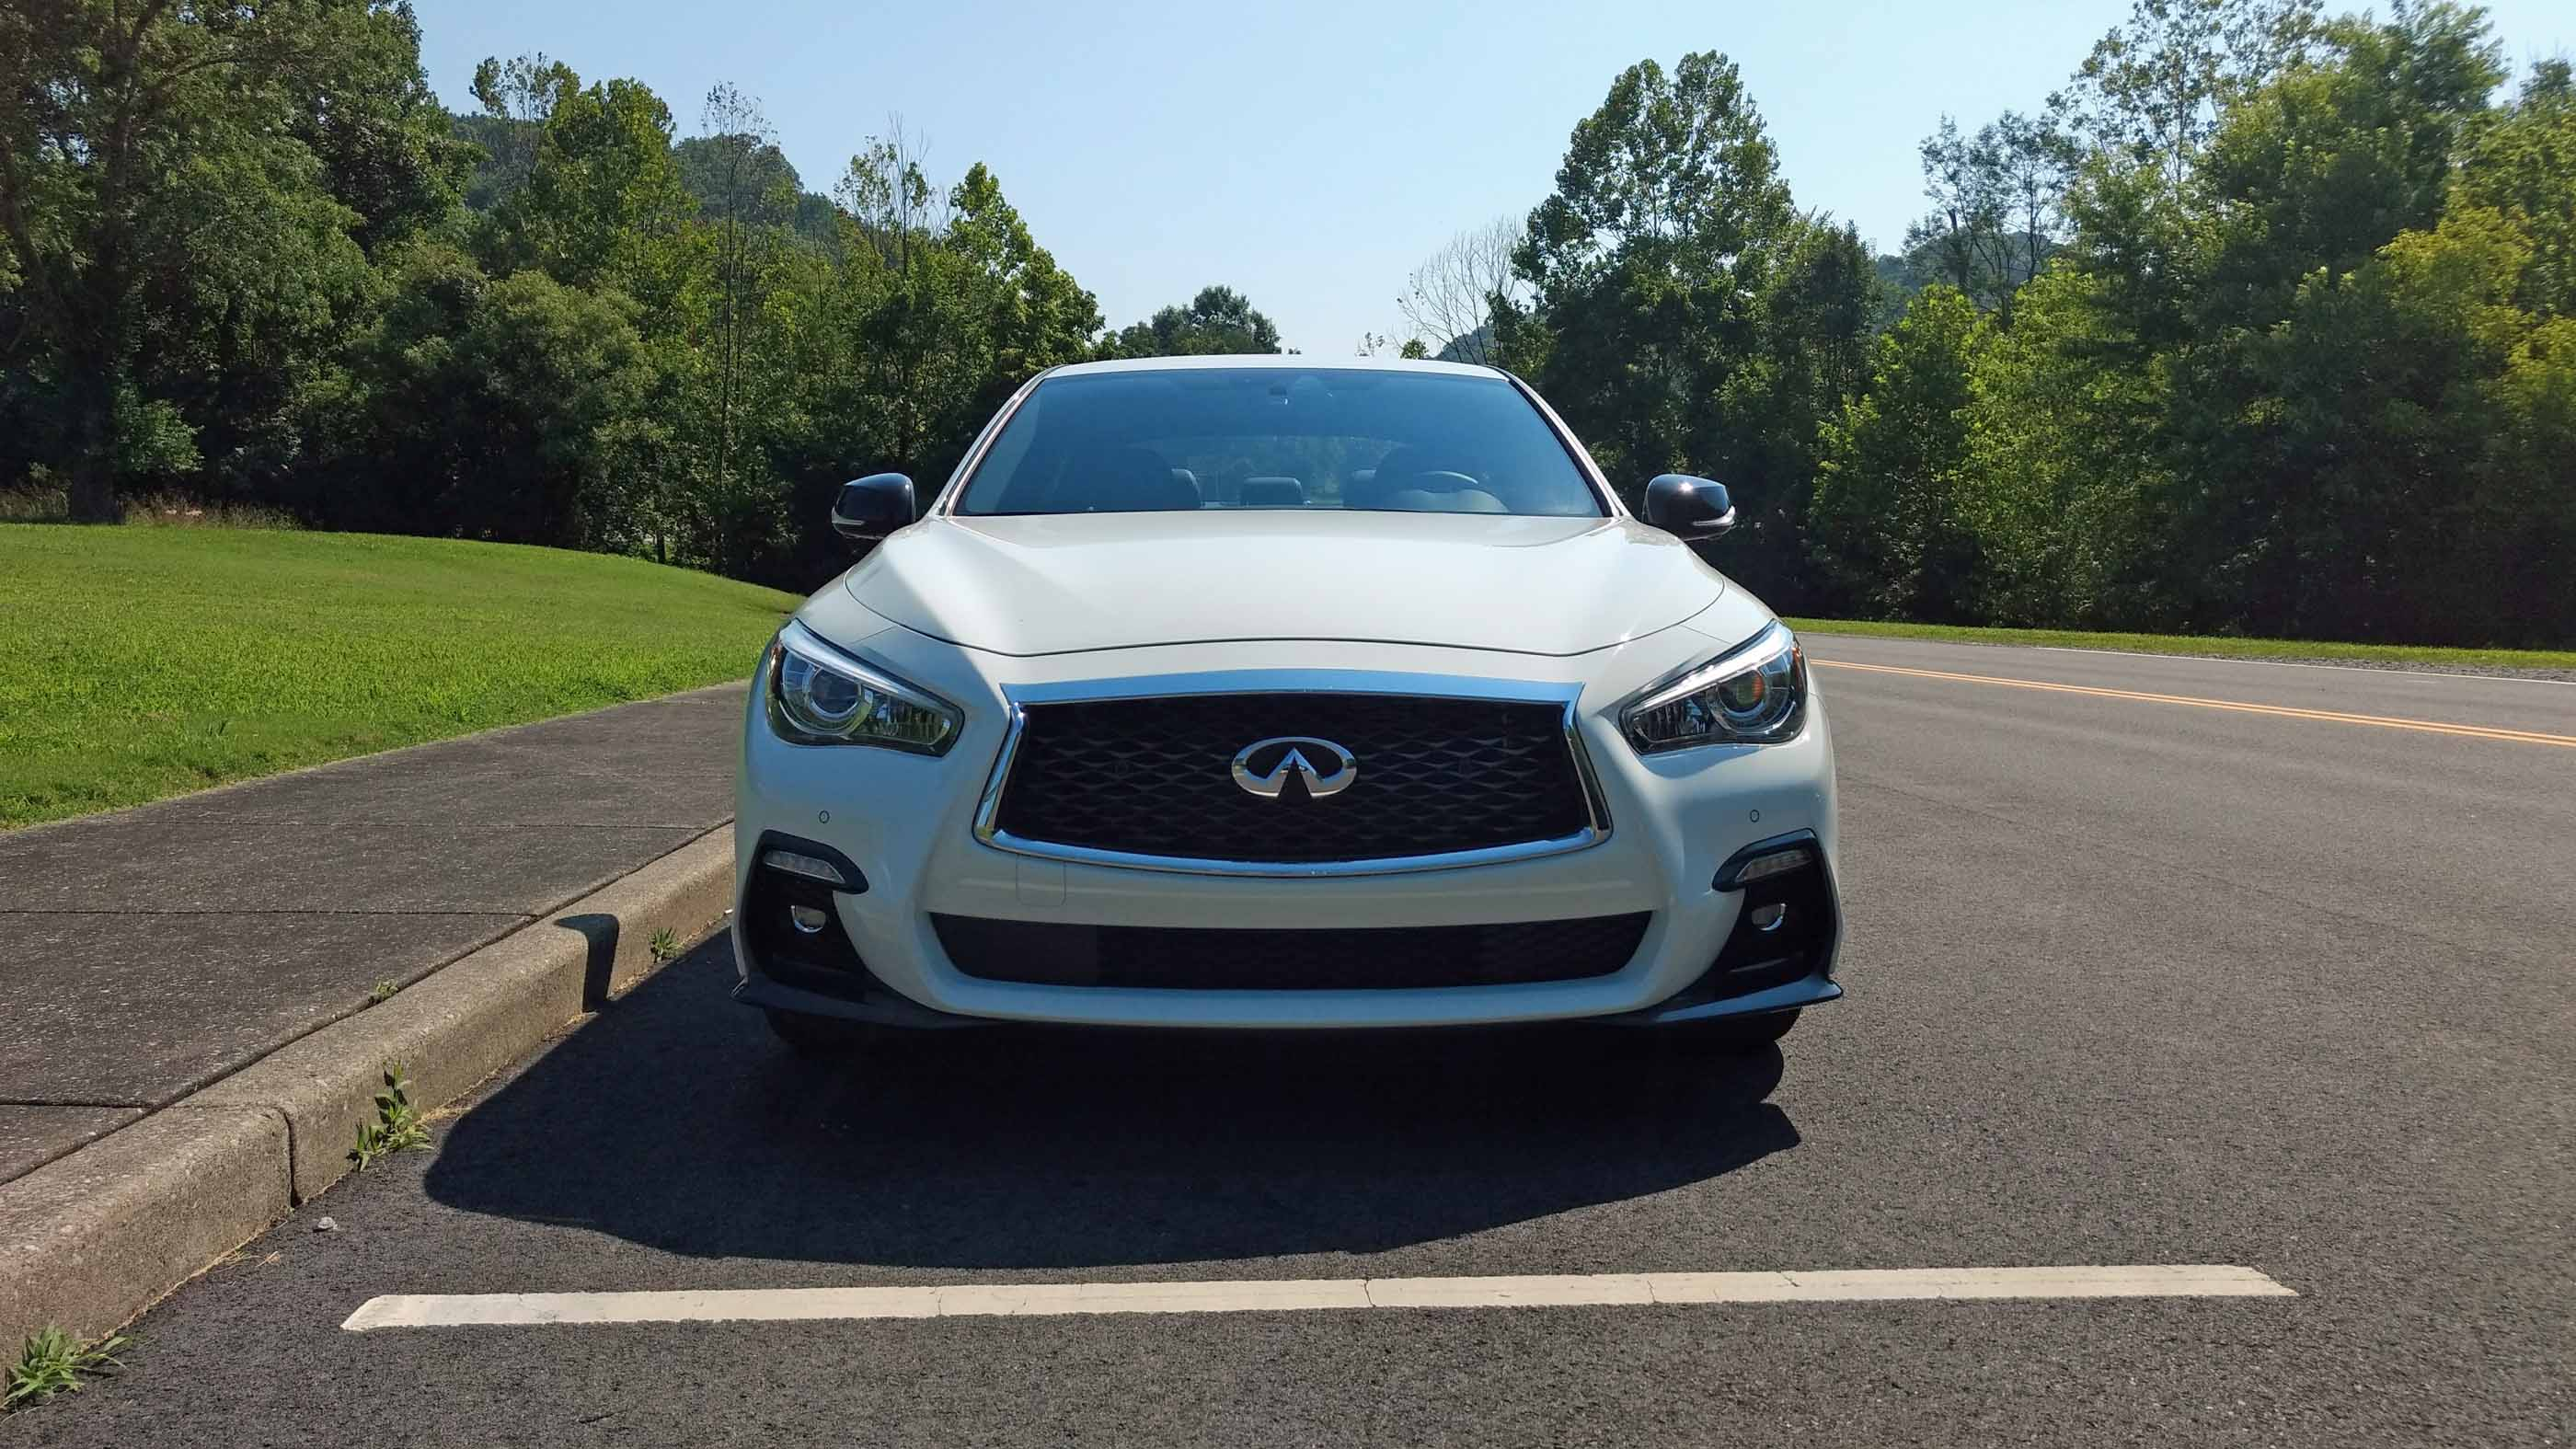 price infiniti infinity roadshow pricing the preview auto and features review of